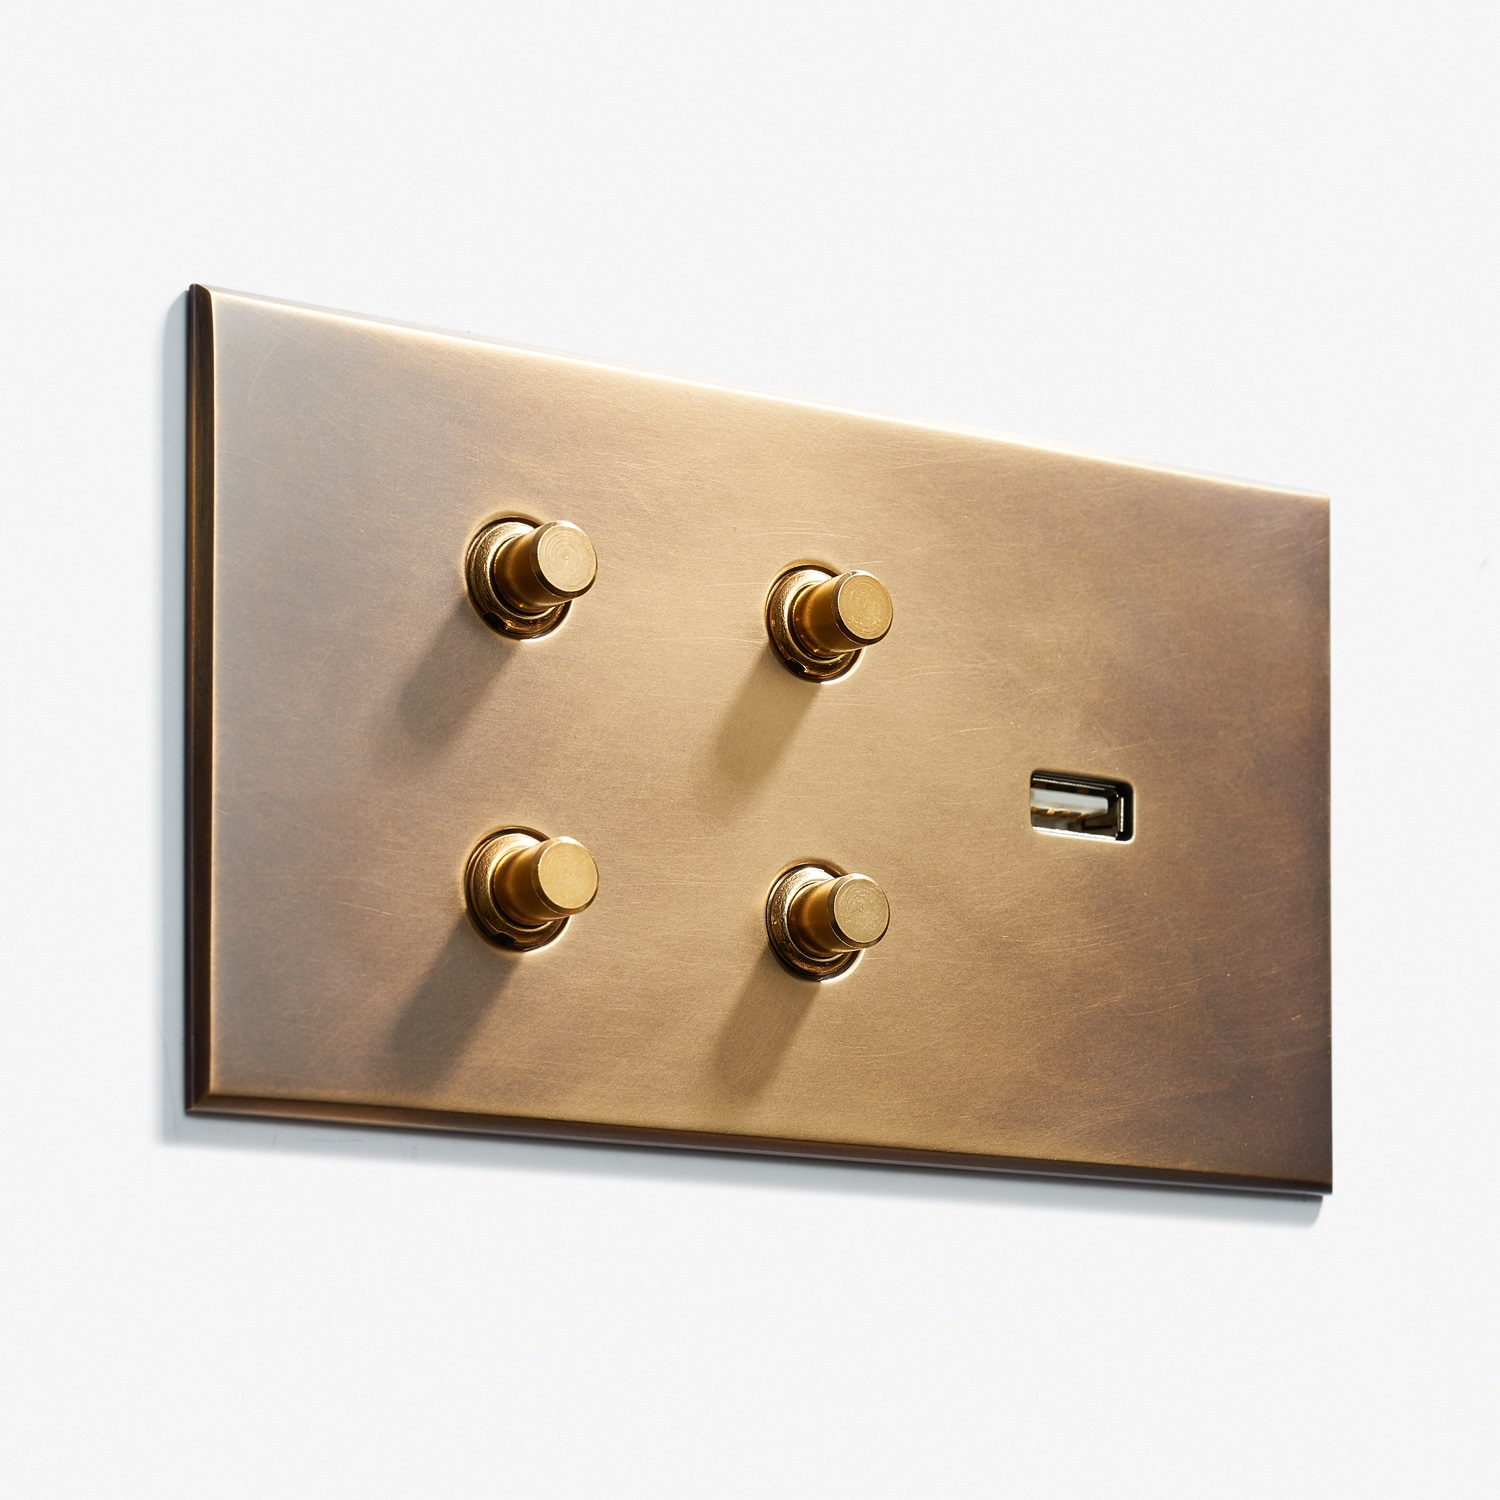 144 x 82 - 4 BP + 1 USB - Hidden Screws - Beveled Edge - Antique Brass 2  .jpg